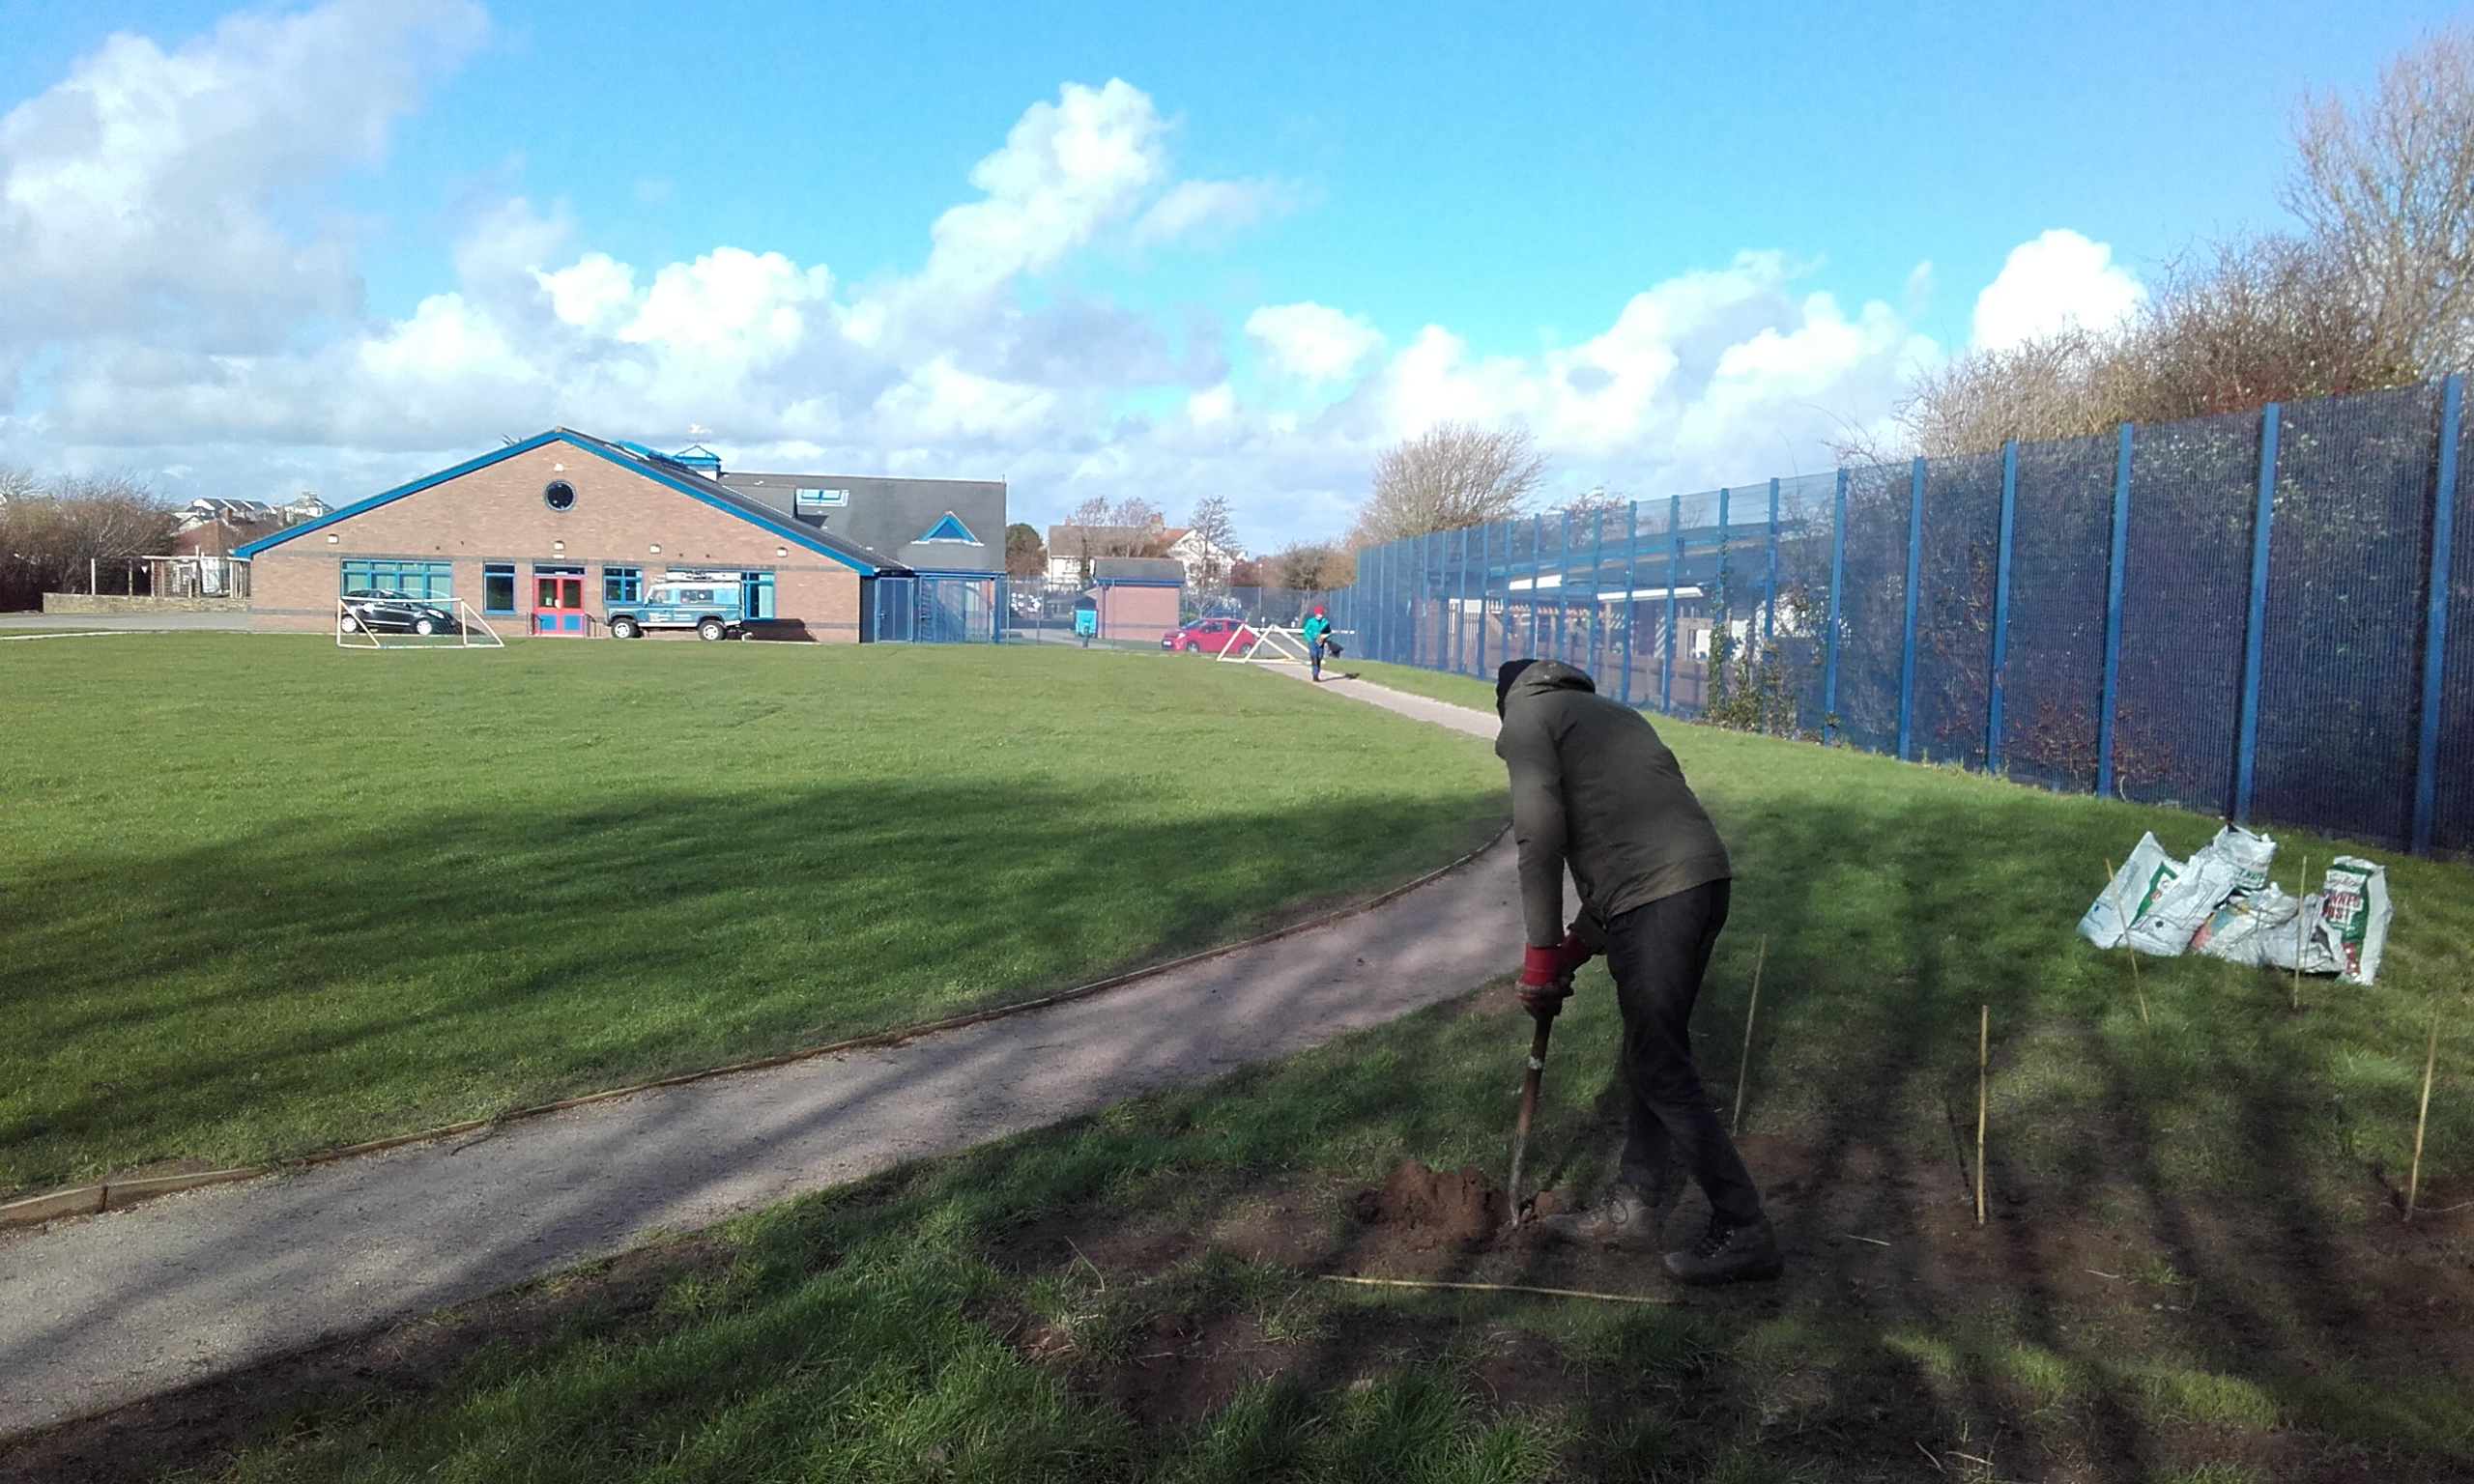 Tree planting in corner of school field